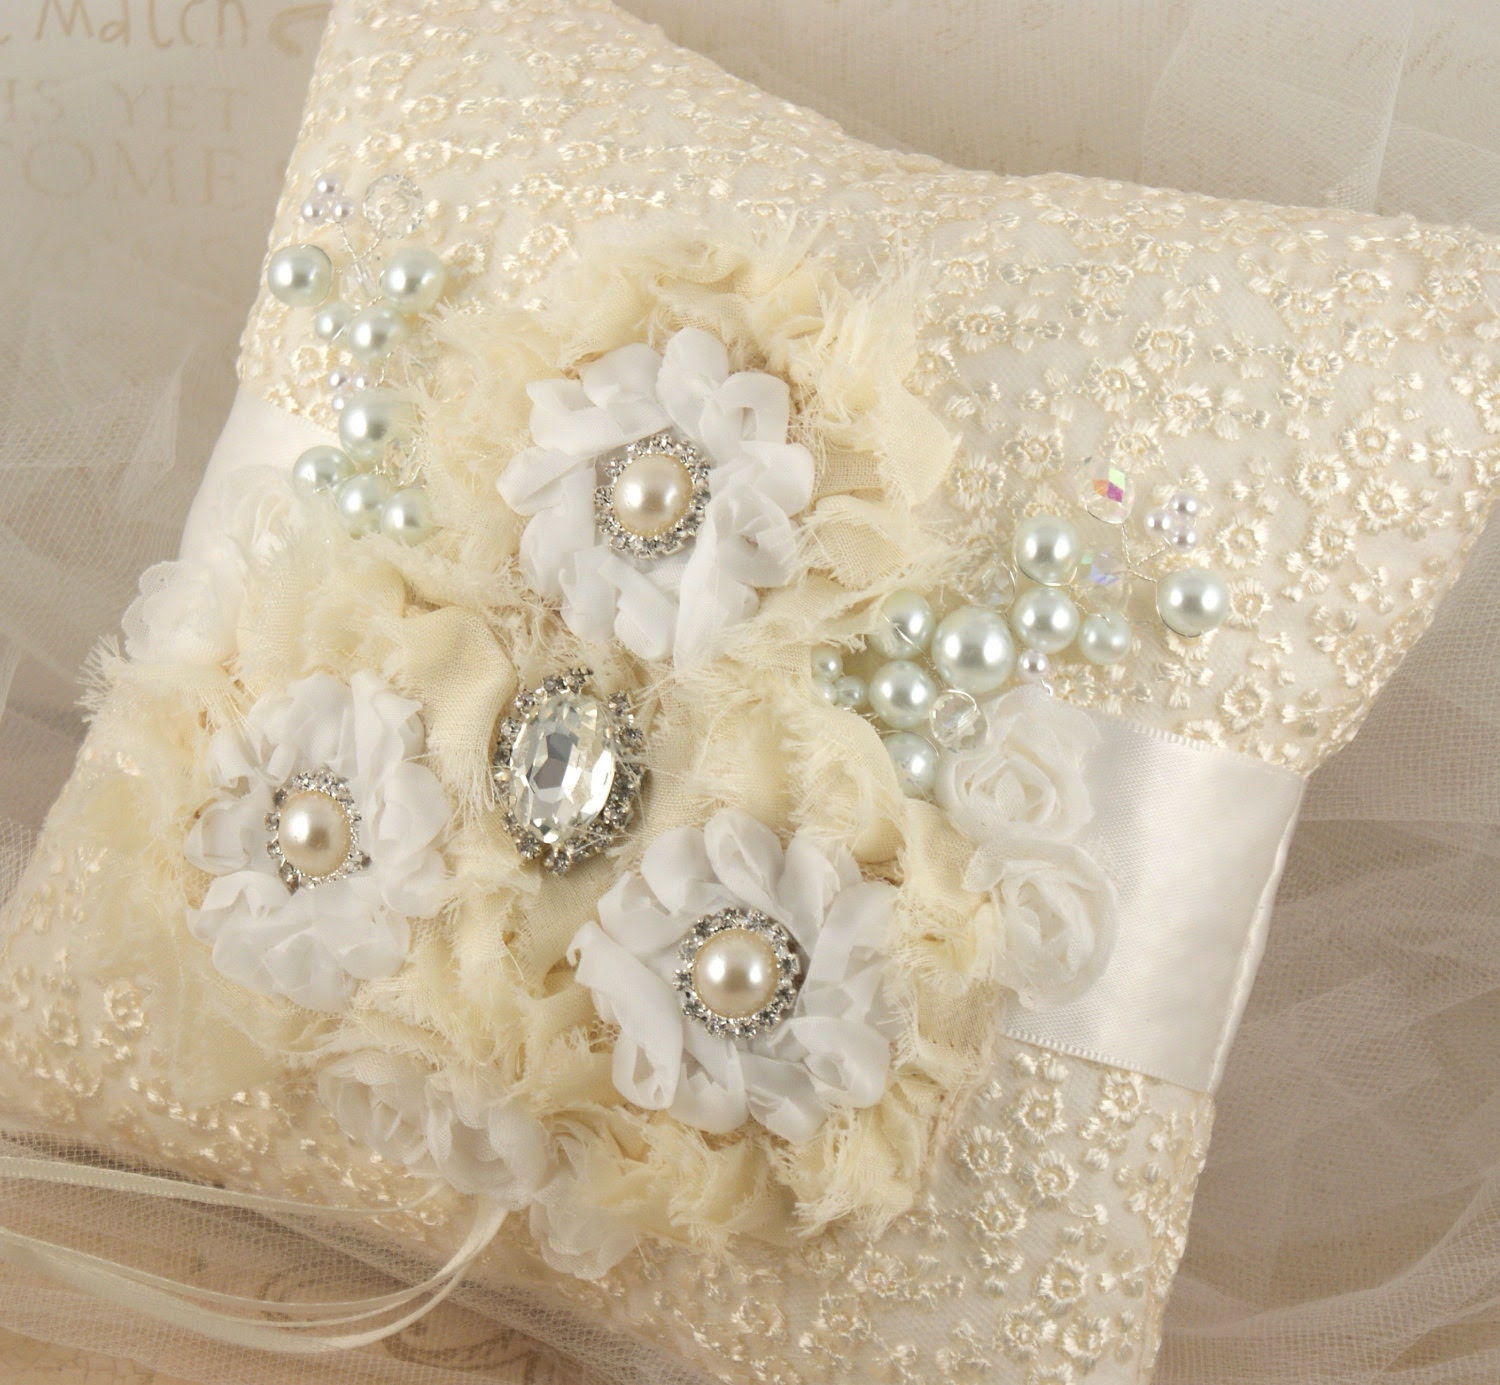 Bridal Ring Bearer Pillow and Flower Girl Basket in White and Ivory with Lace, Chiffon, Tulle and Jewels